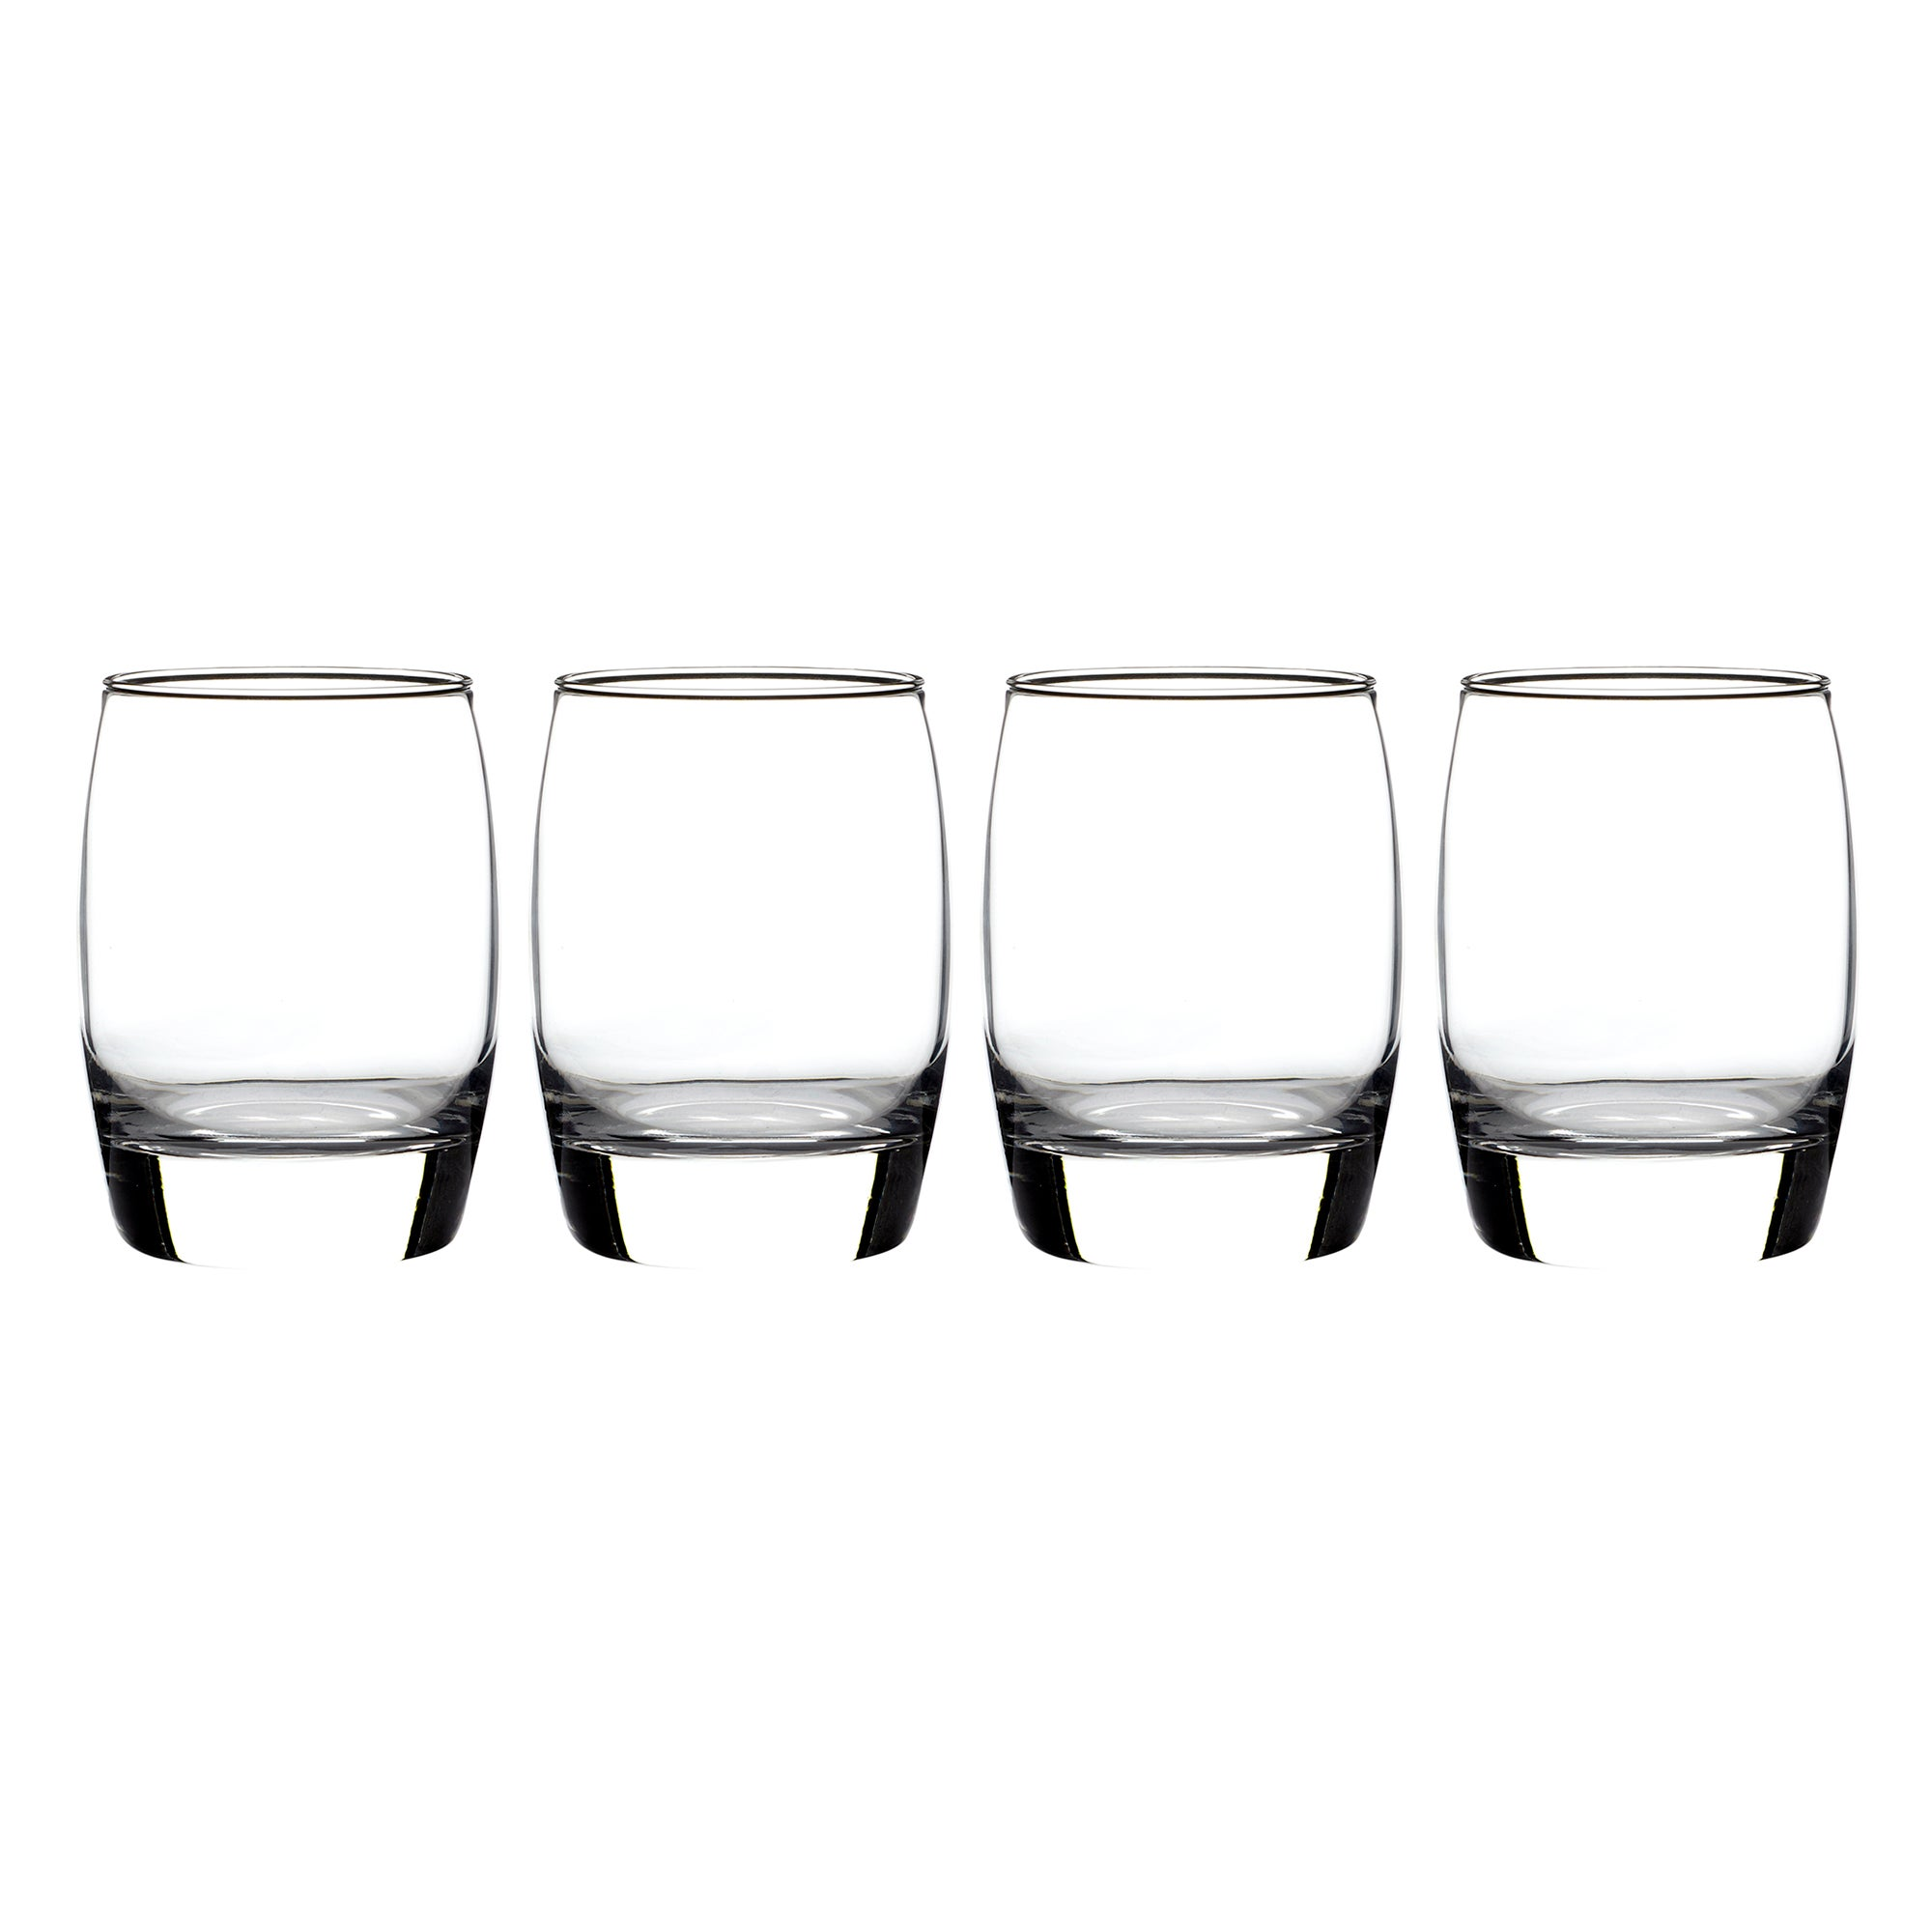 Pausa Endessa Set of 4 Mixer Glasses